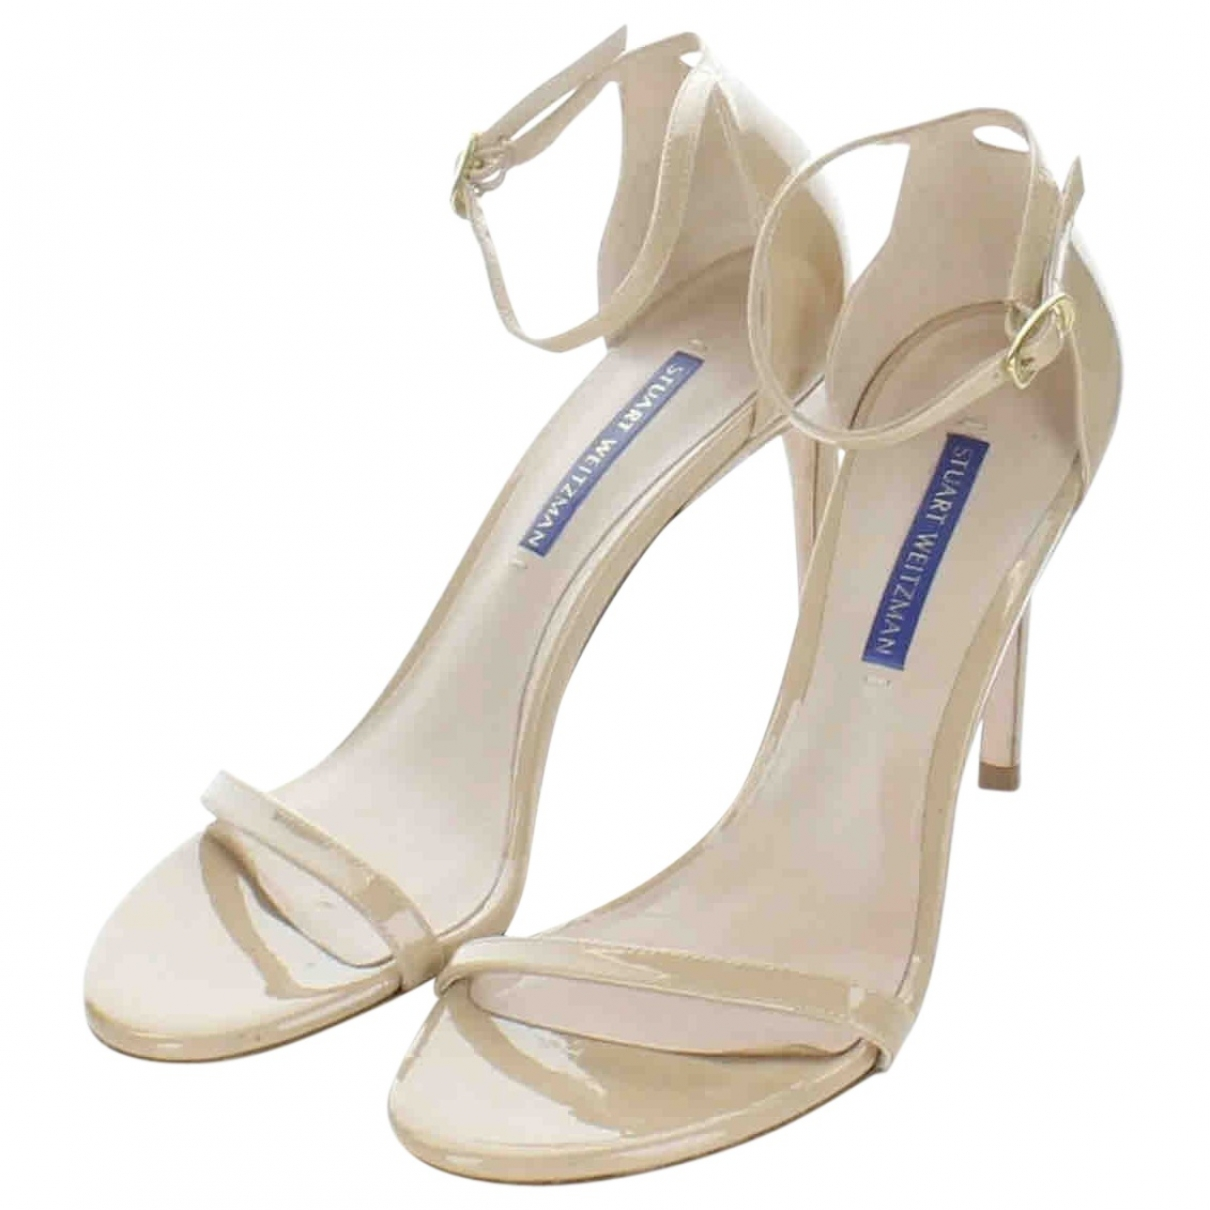 Stuart Weitzman \N Beige Patent leather Mules & Clogs for Women 6.5 US